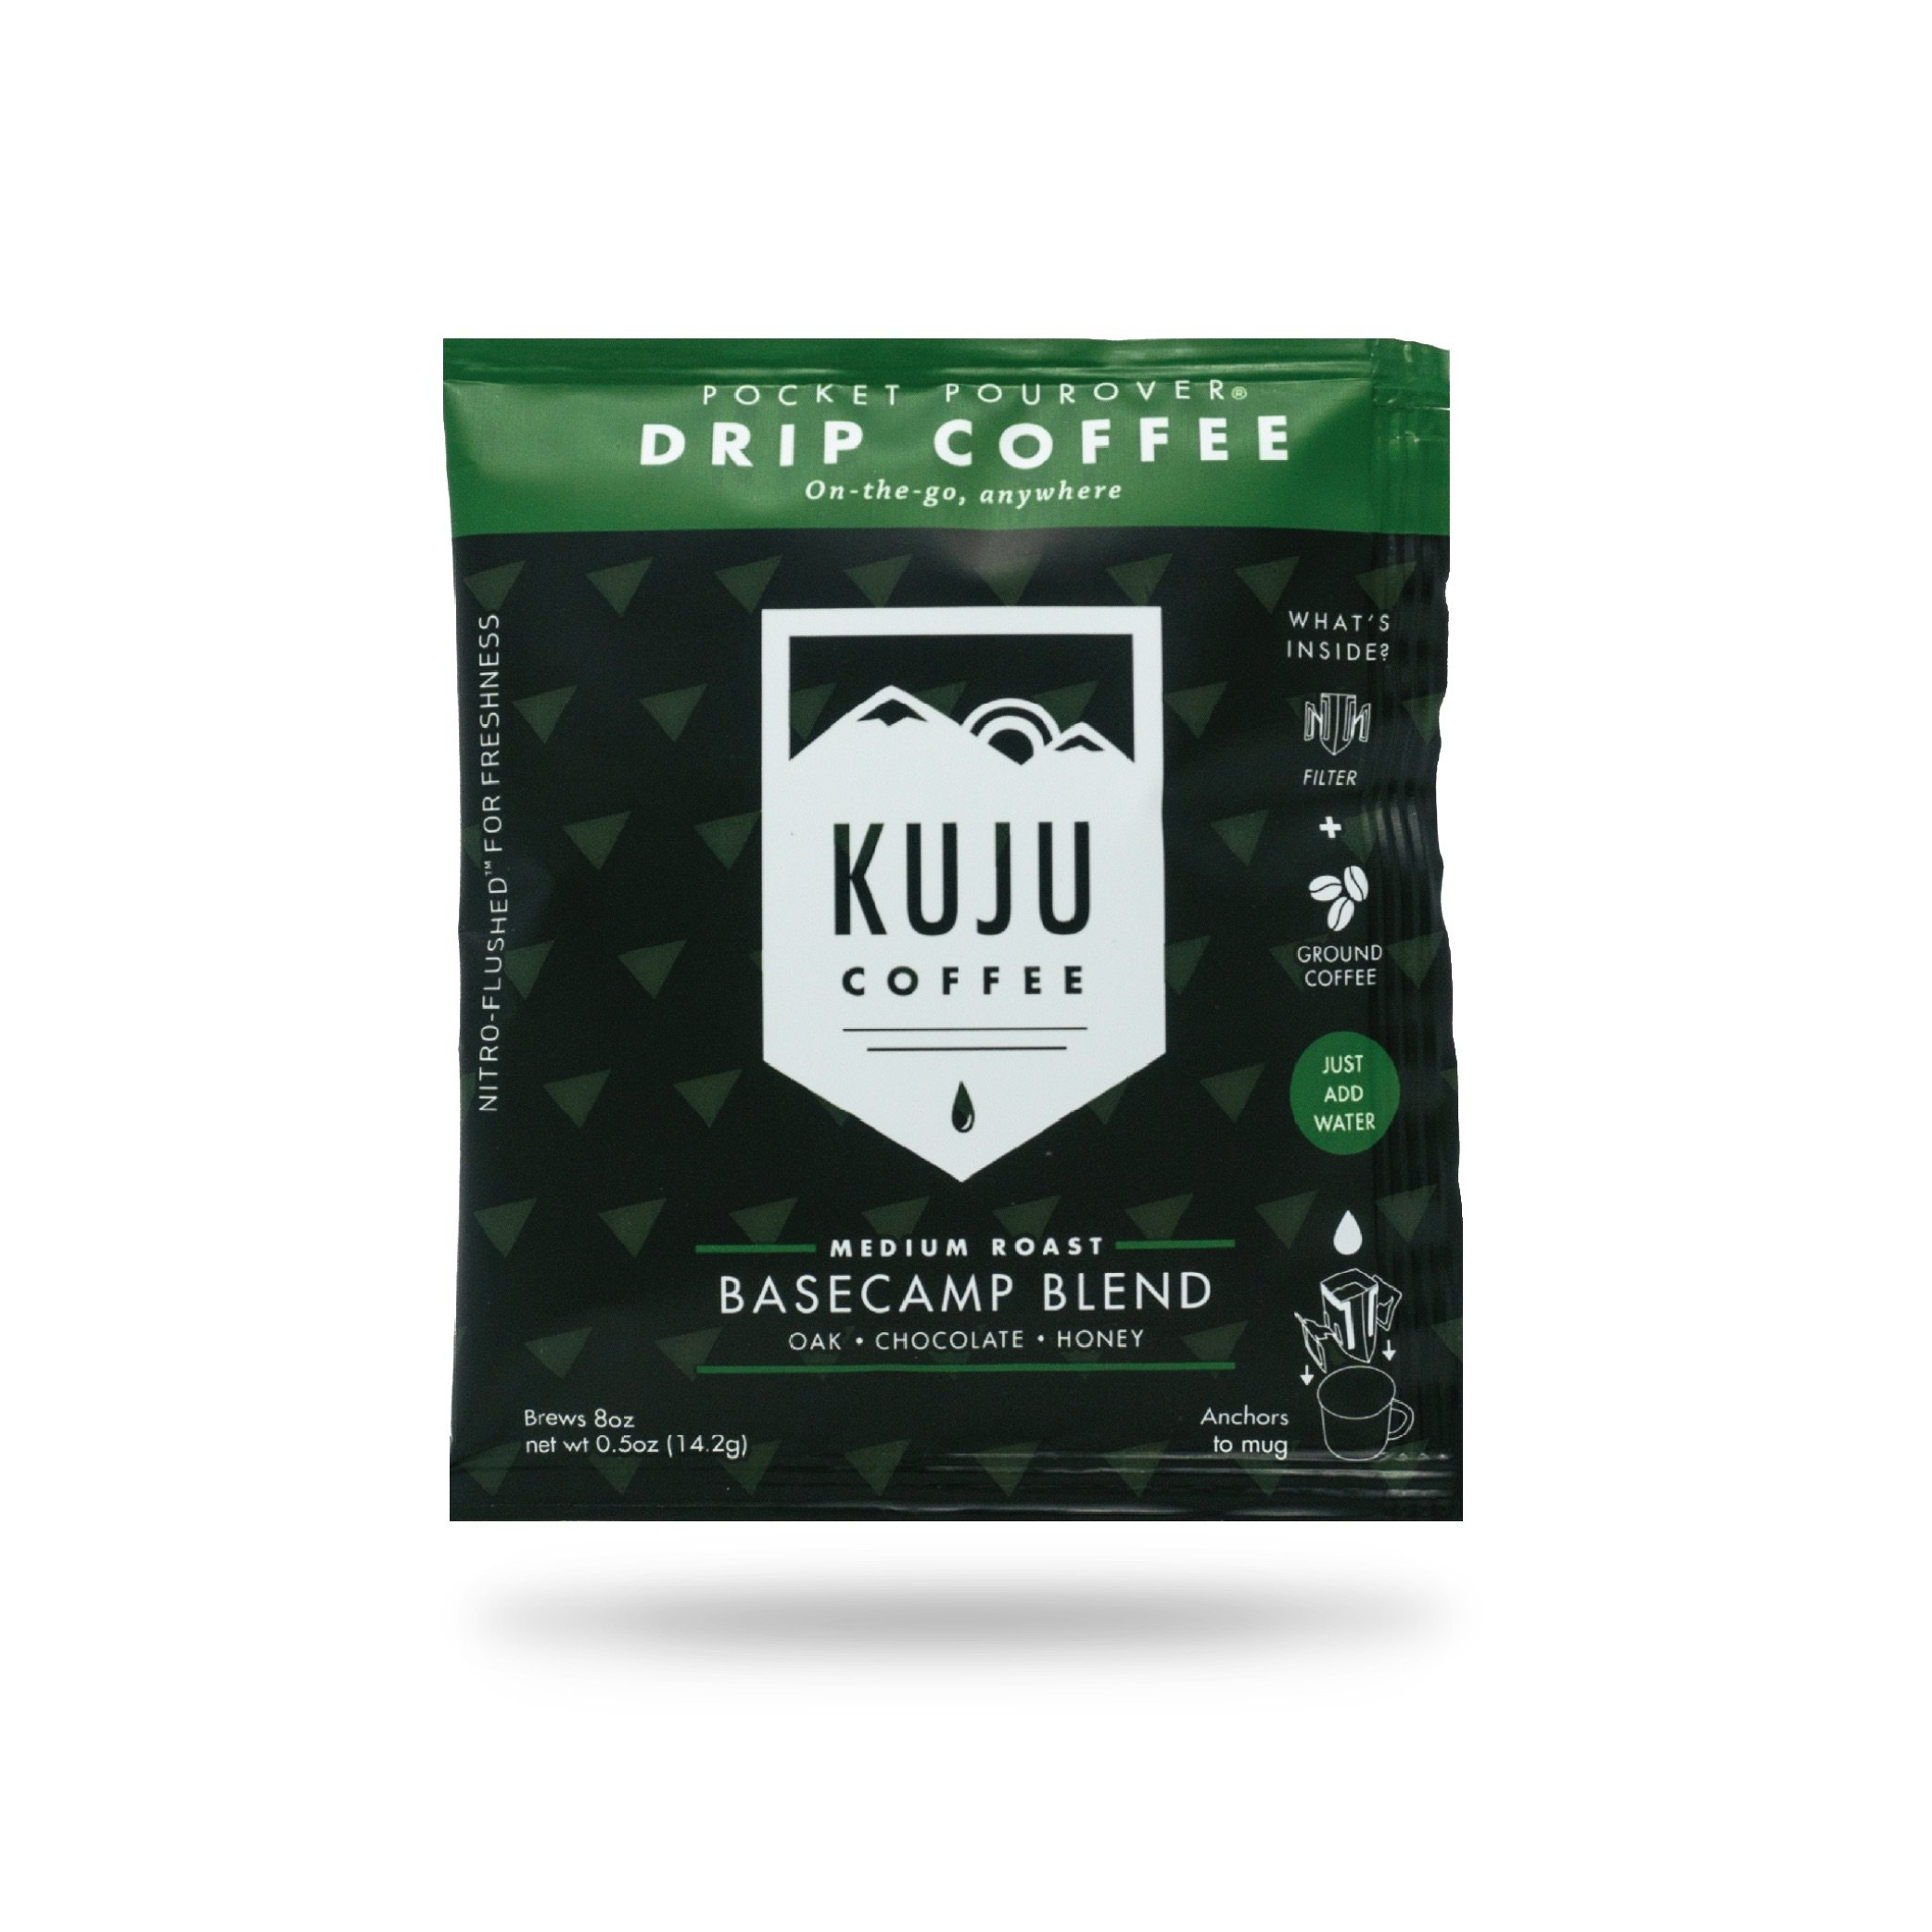 Kuju Coffee Pocket PourOver - Single Serve, Portable Pour Over Coffee - No Equipment Needed - Made with Ethically-Sourced Specialty Coffee - 10-pack | Basecamp Blend, Medium Roast